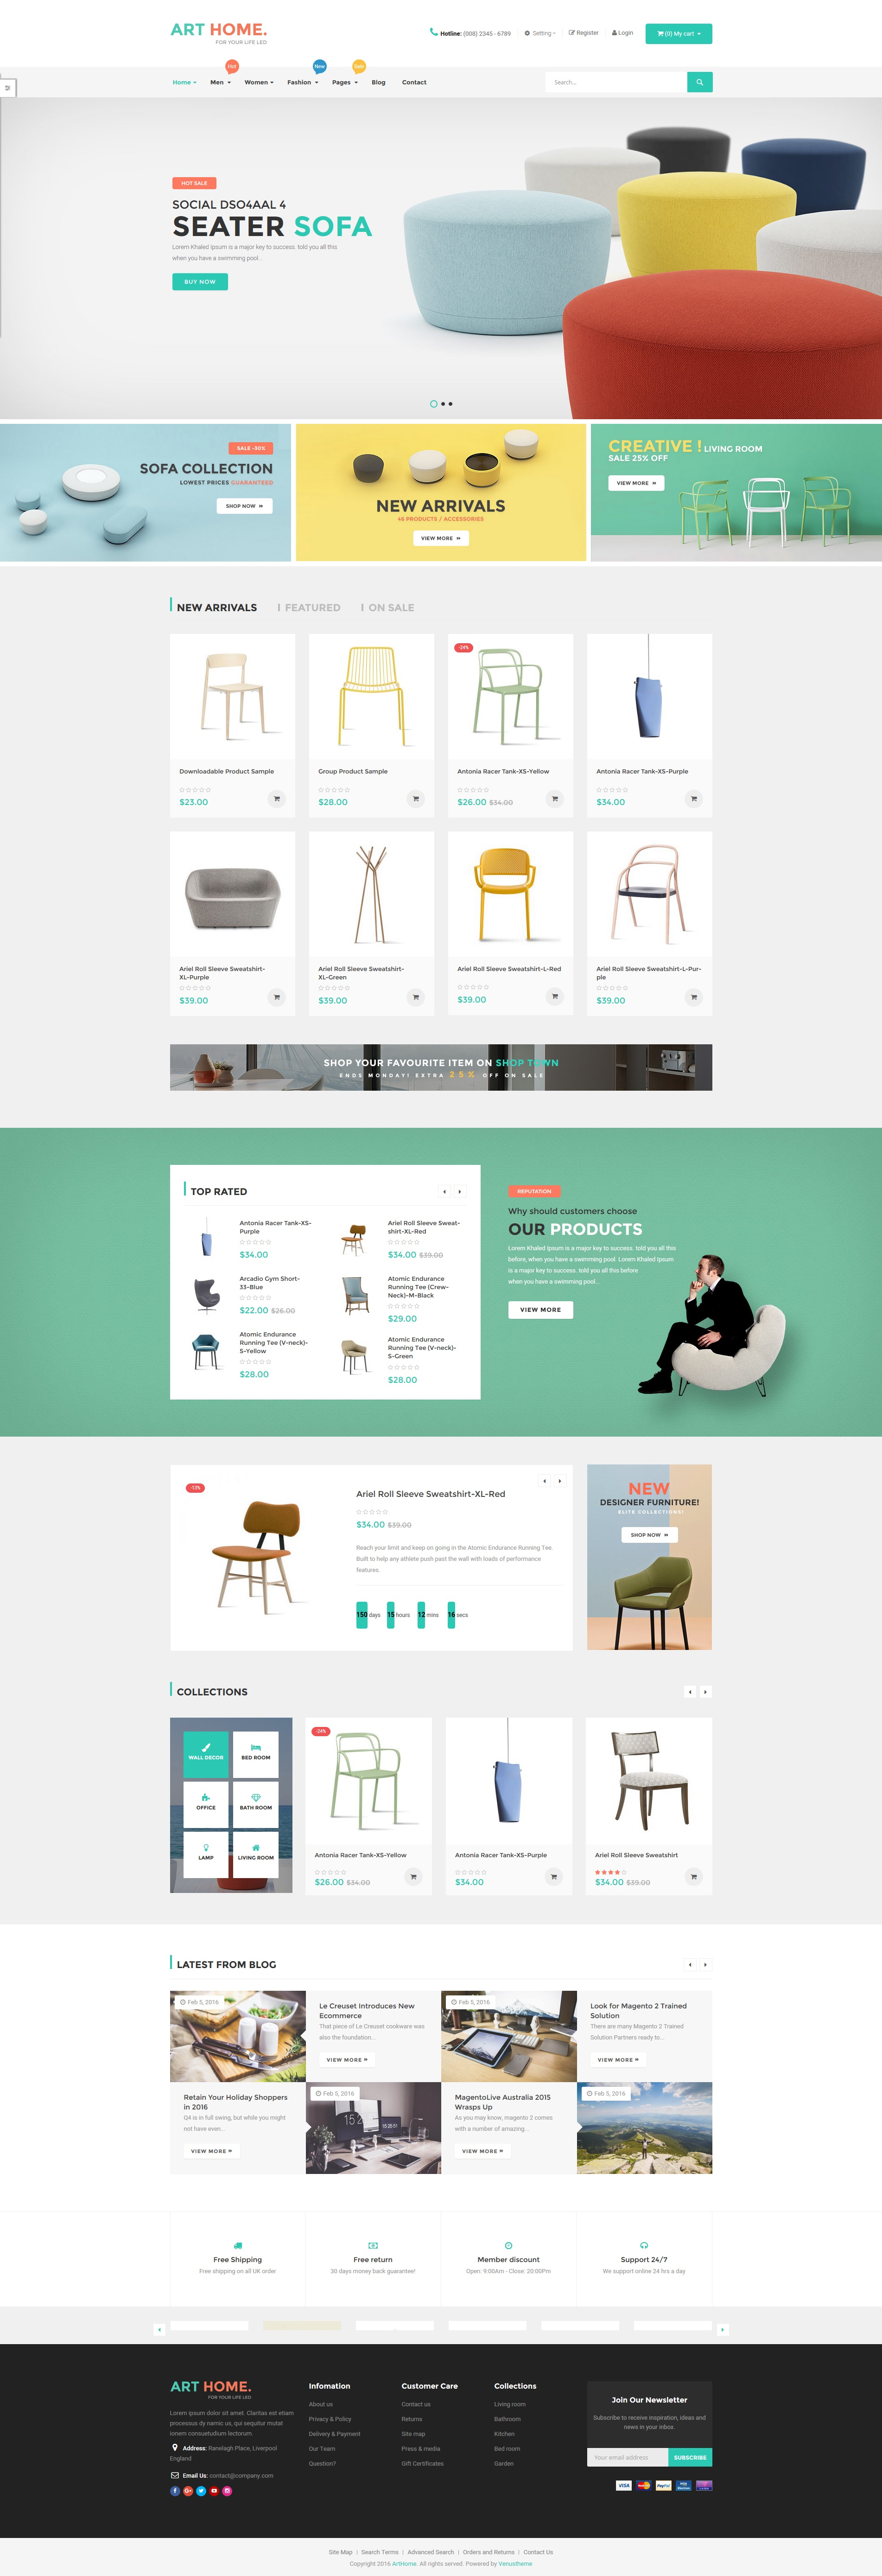 ves arthome magento template pages builder by venustheme 01 preview jpg